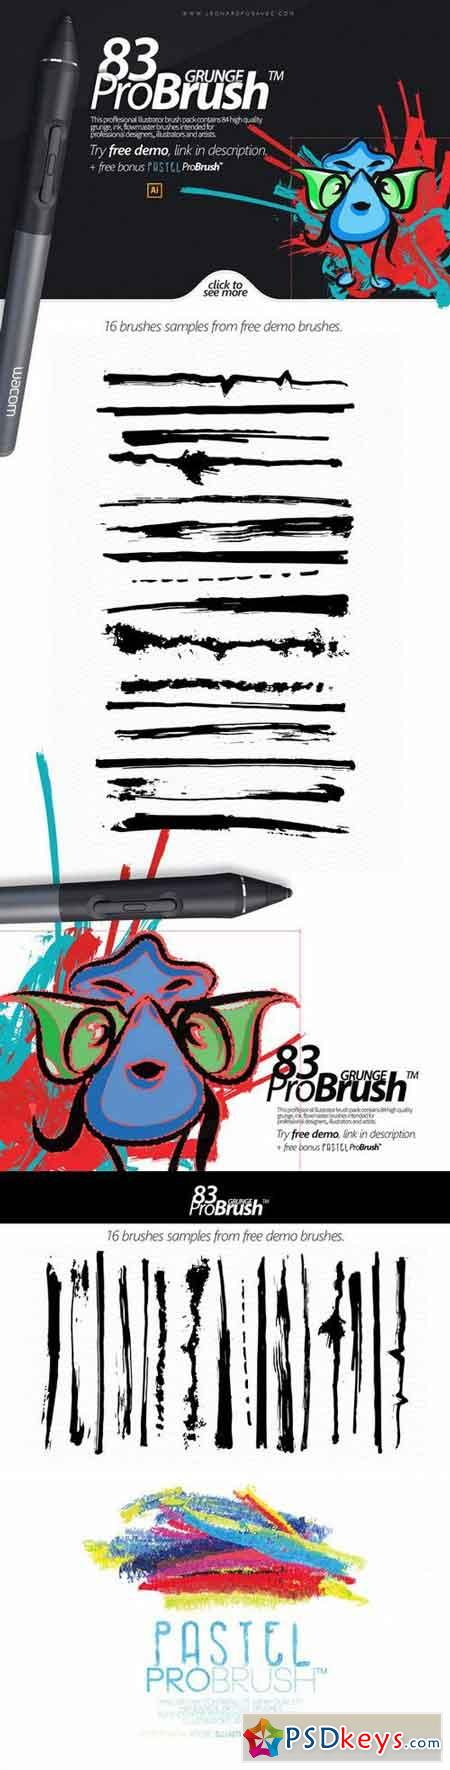 83 Grunge ProBrush™ + Free Demo 118481